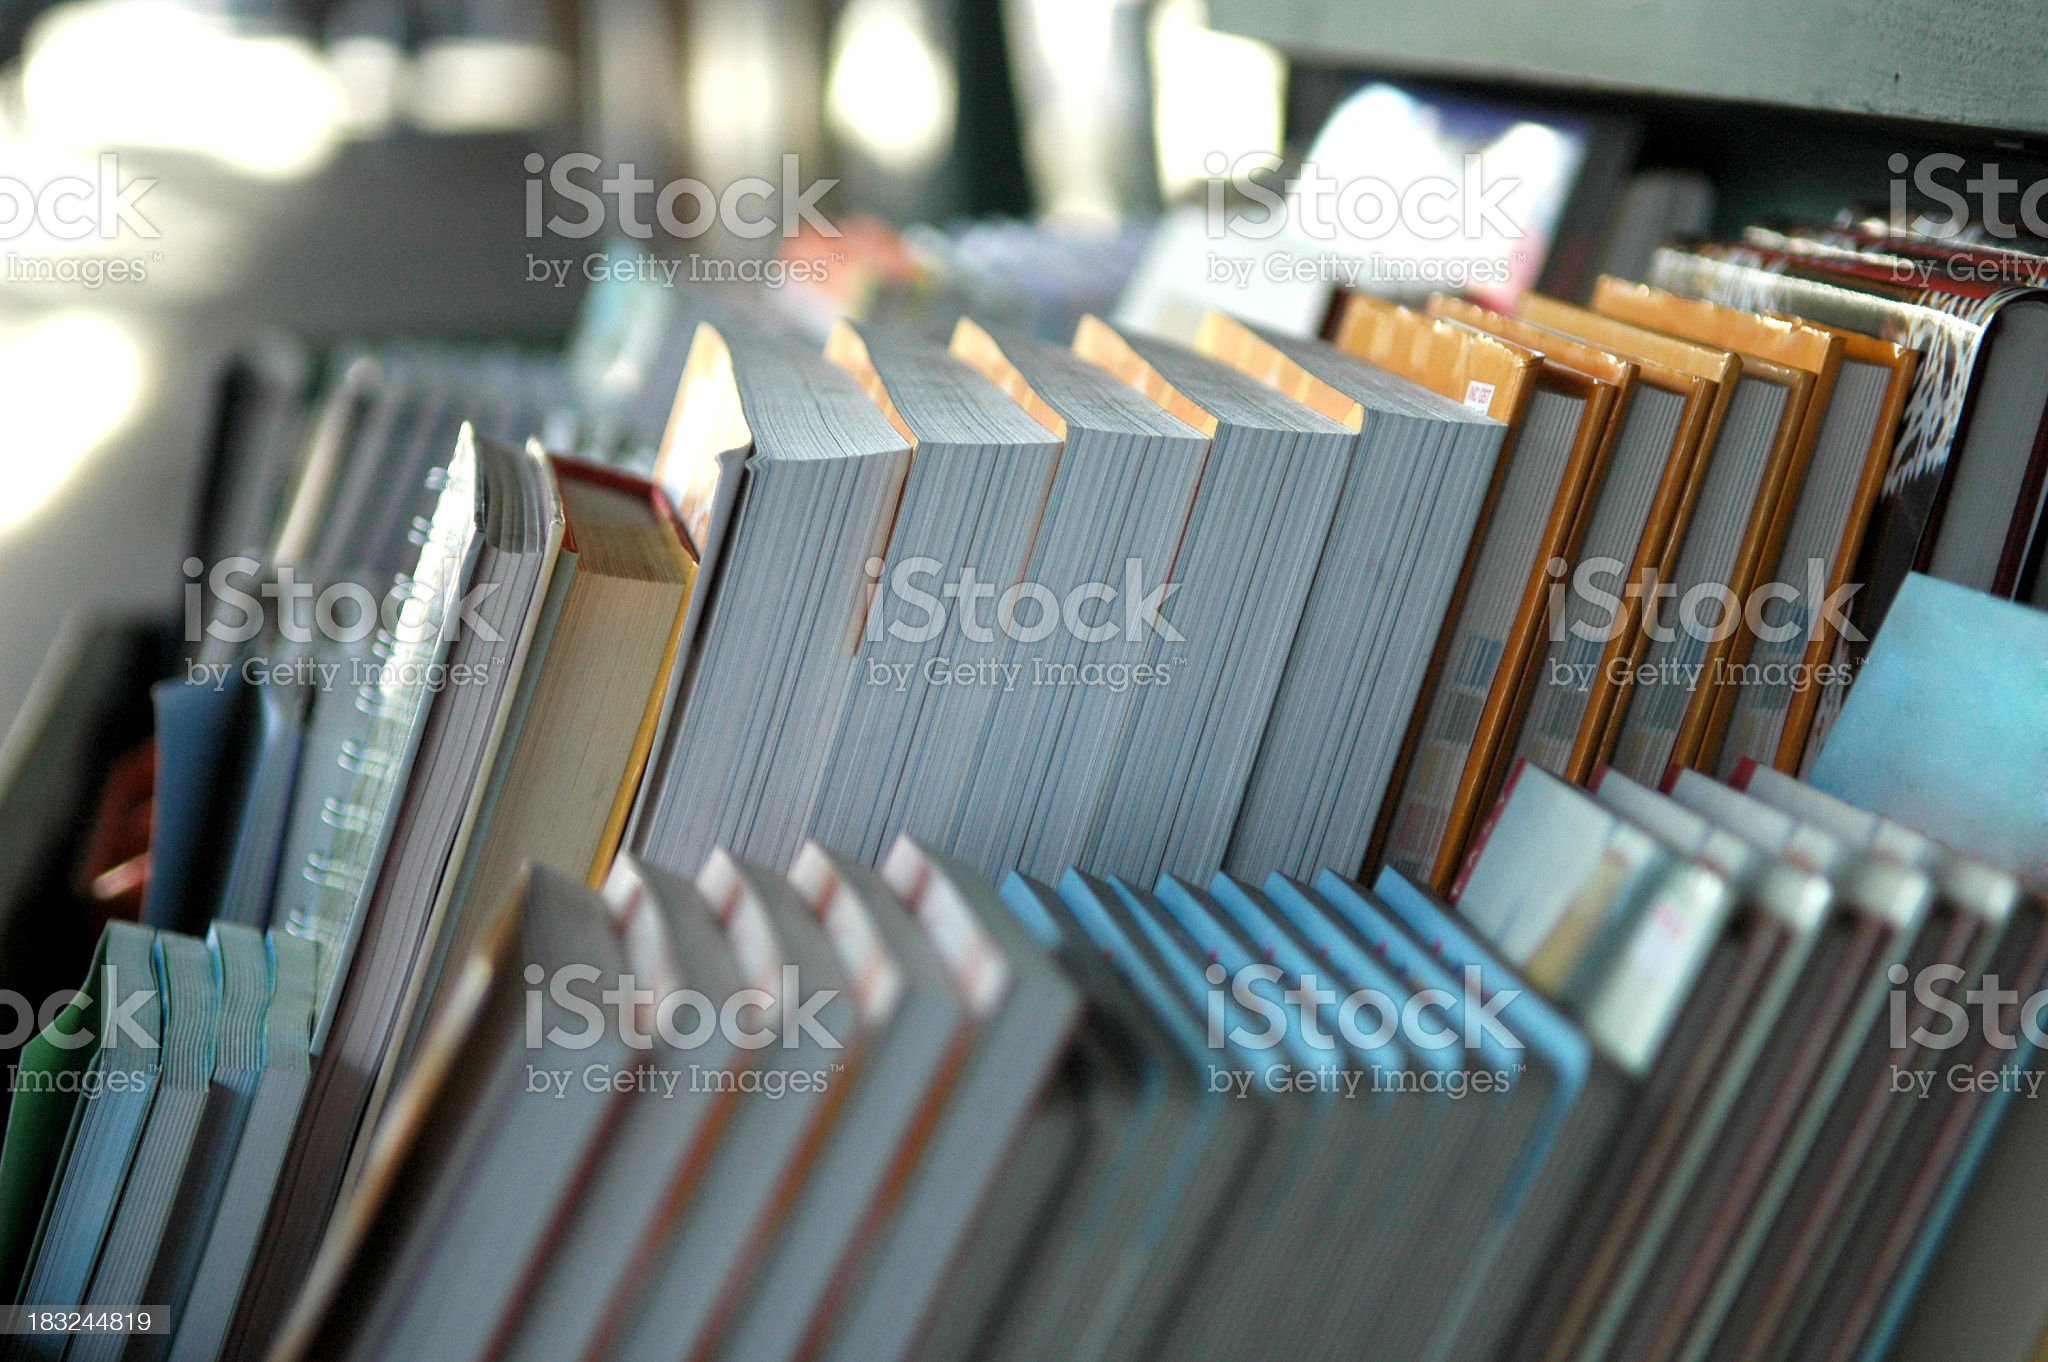 Books on display in rows in a book shop royalty-free stock photo